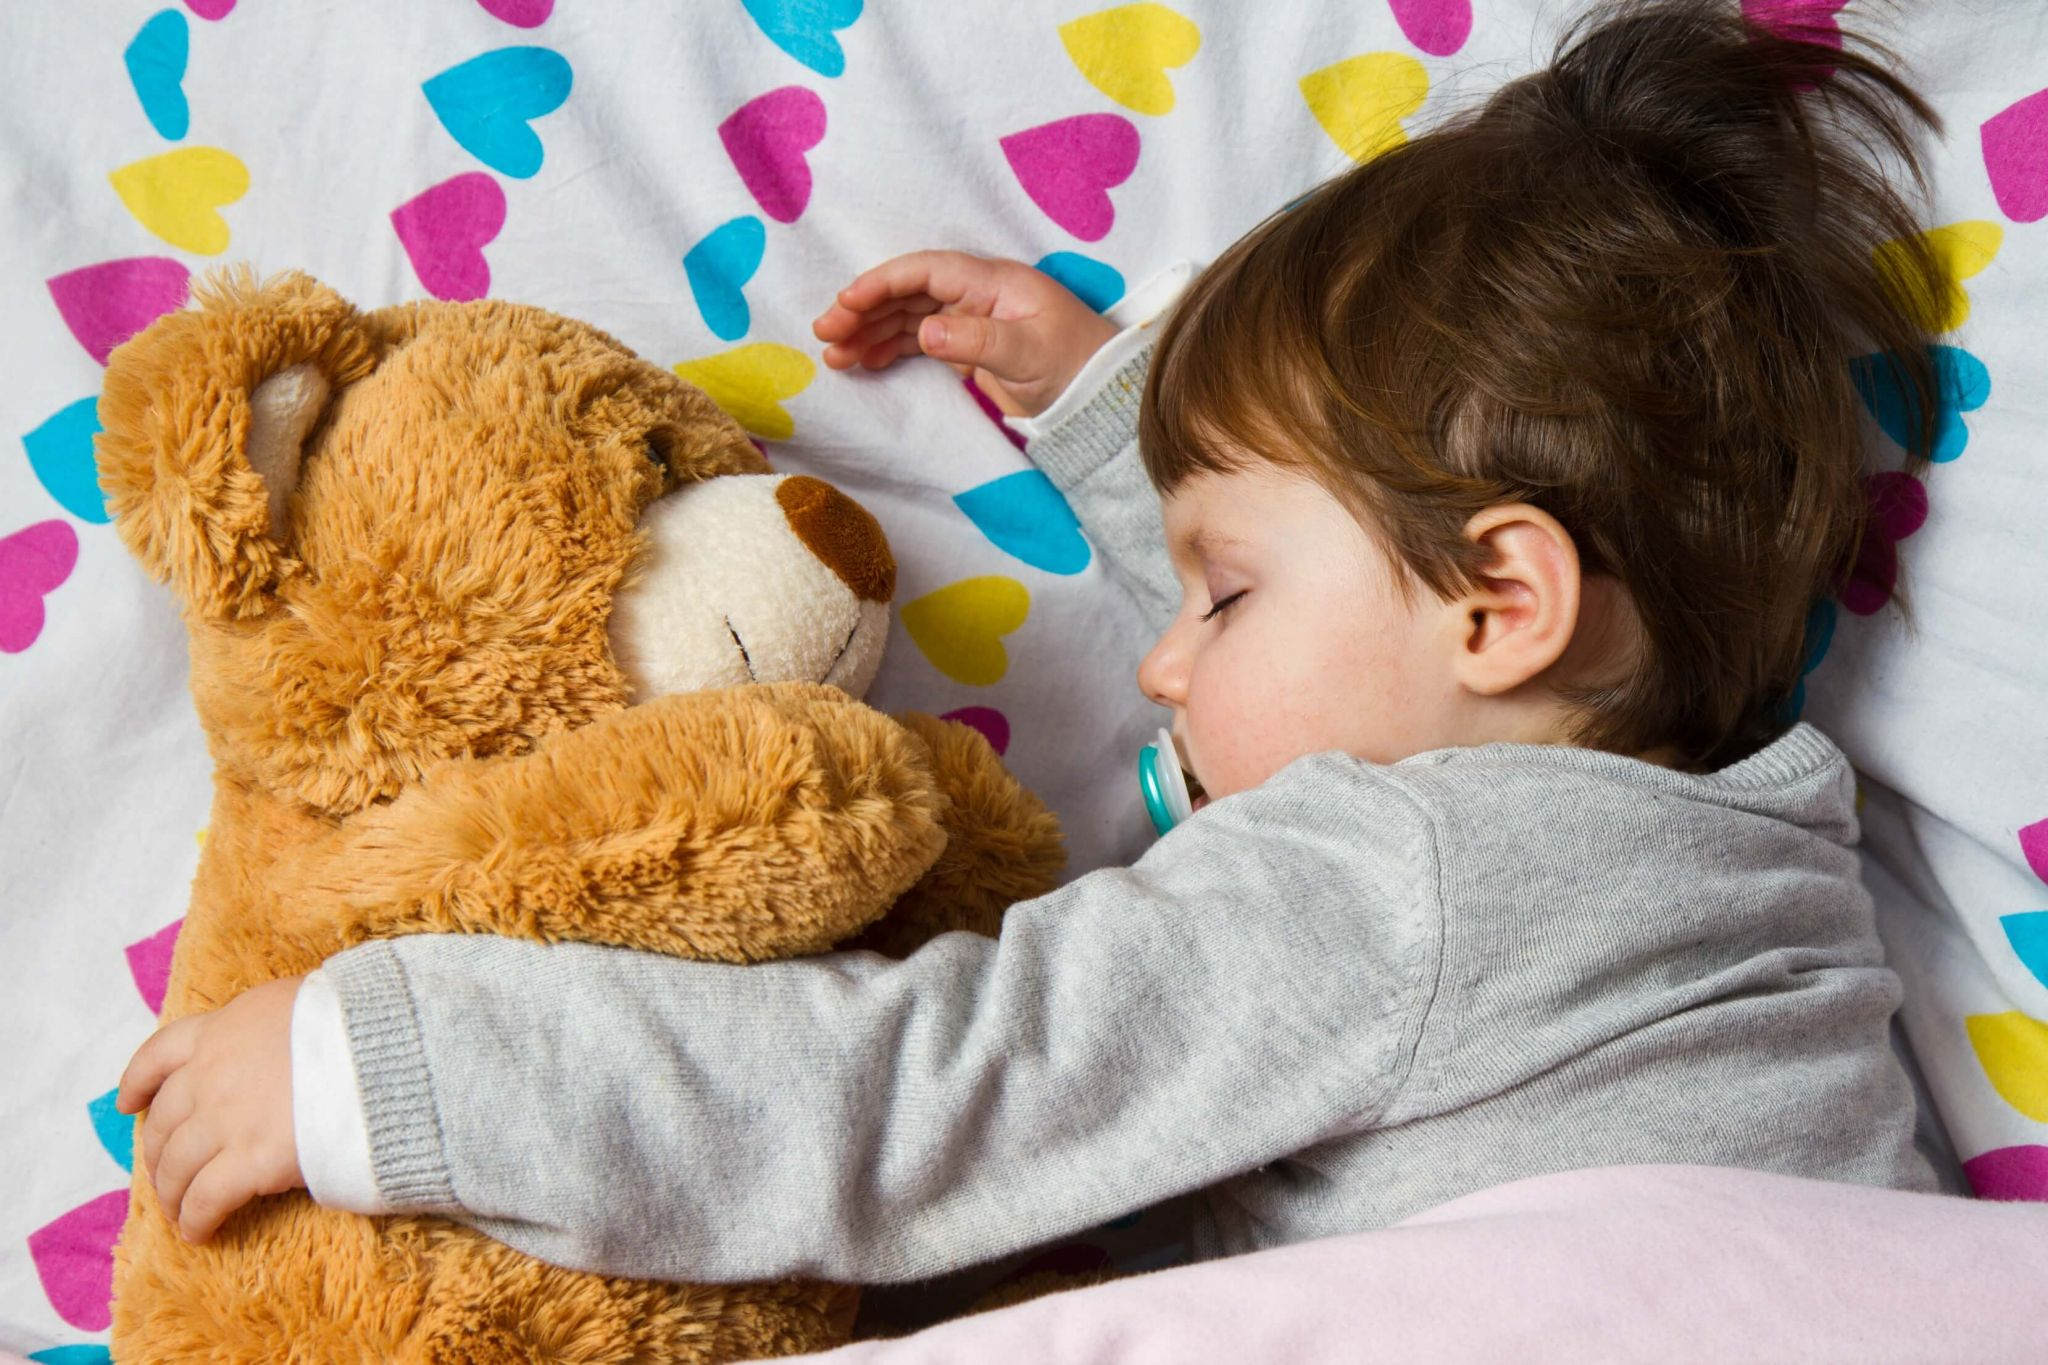 help children sleep in the heat - little boy asleep cuddling a teddy bear